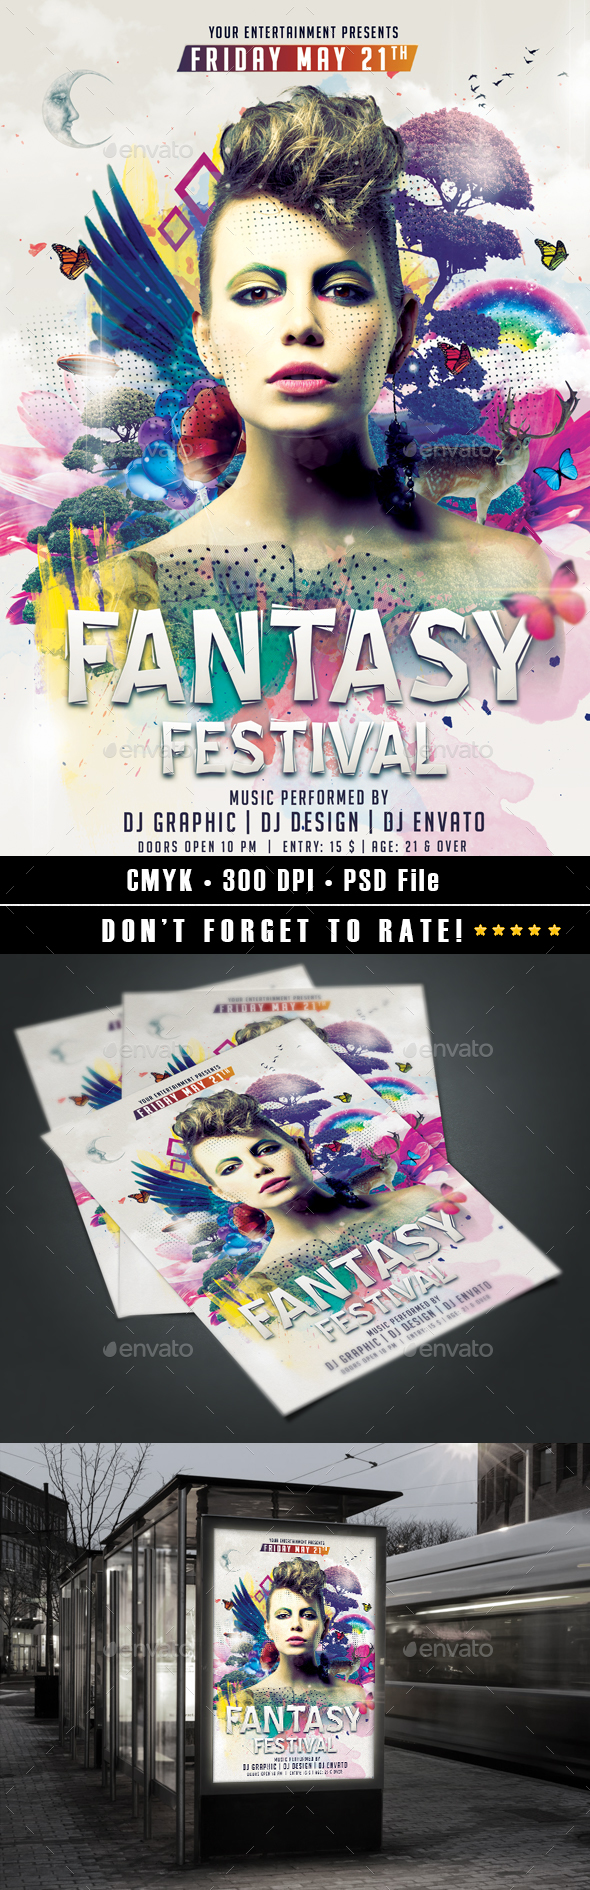 Fantasy Festival Flyer - Events Flyers